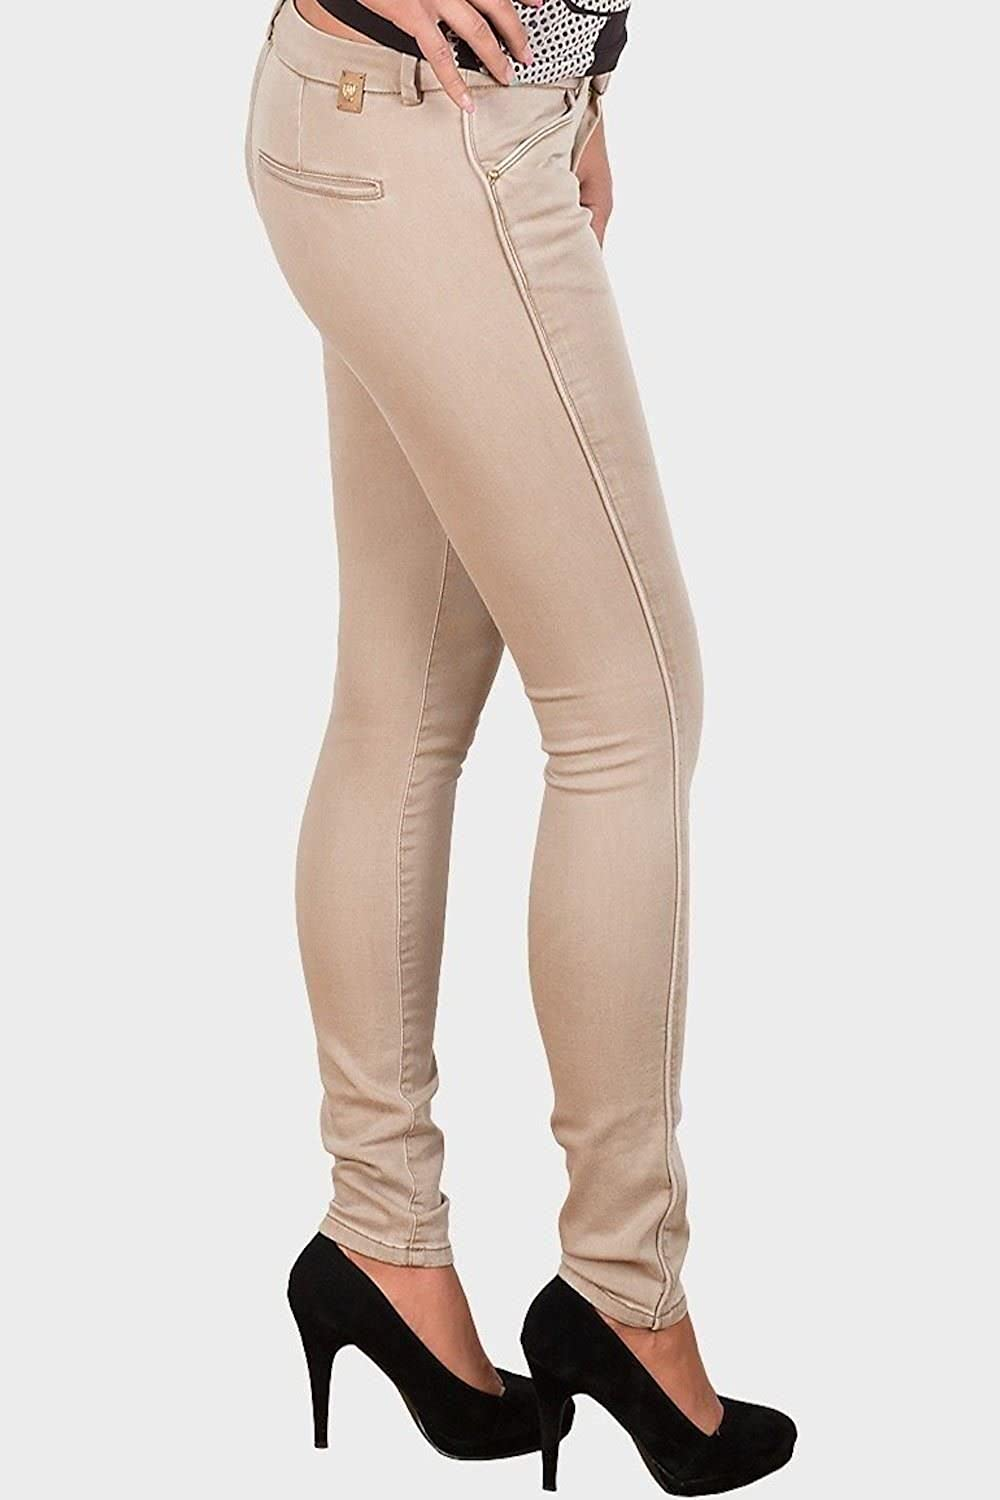 New Ladies Designer Cotton Slim Fit Twill Jeans Beige ...